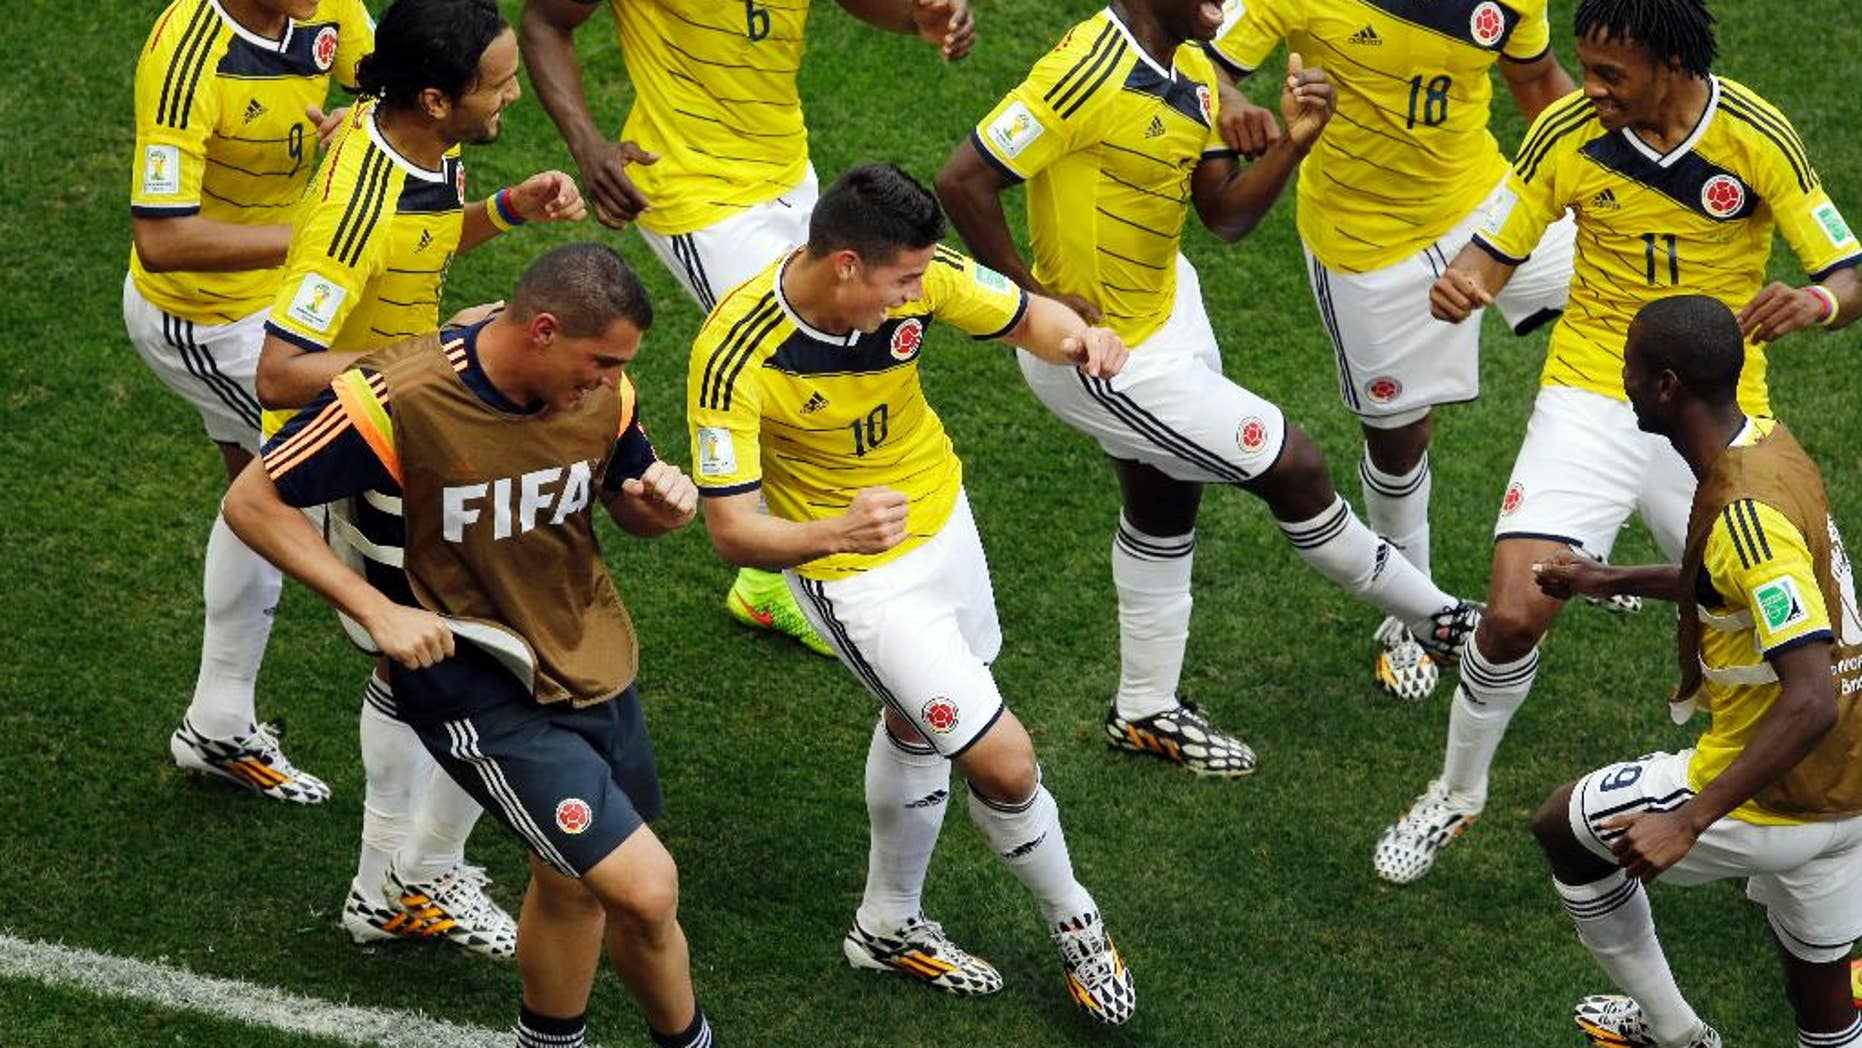 FILE - In this June 19, 2014, file photo, Colombia's James Rodriguez, center, dances with teammates in celebration after scoring during the group C World Cup soccer match between Colombia and Ivory Coast at the Estadio Nacional in Brasilia, Brazil. The euphoria in soccer-mad Colombia is deafening, and wonderfully contagious, ahead of Friday's do-or-die World Cup match against host Brazil. Not since Colombia drubbed Argentina 5-0 in a 1993 World Cup qualifier has the South American nation of 48 million been so enthralled by the beautiful game. (AP Photo/Themba Hadebe, File)